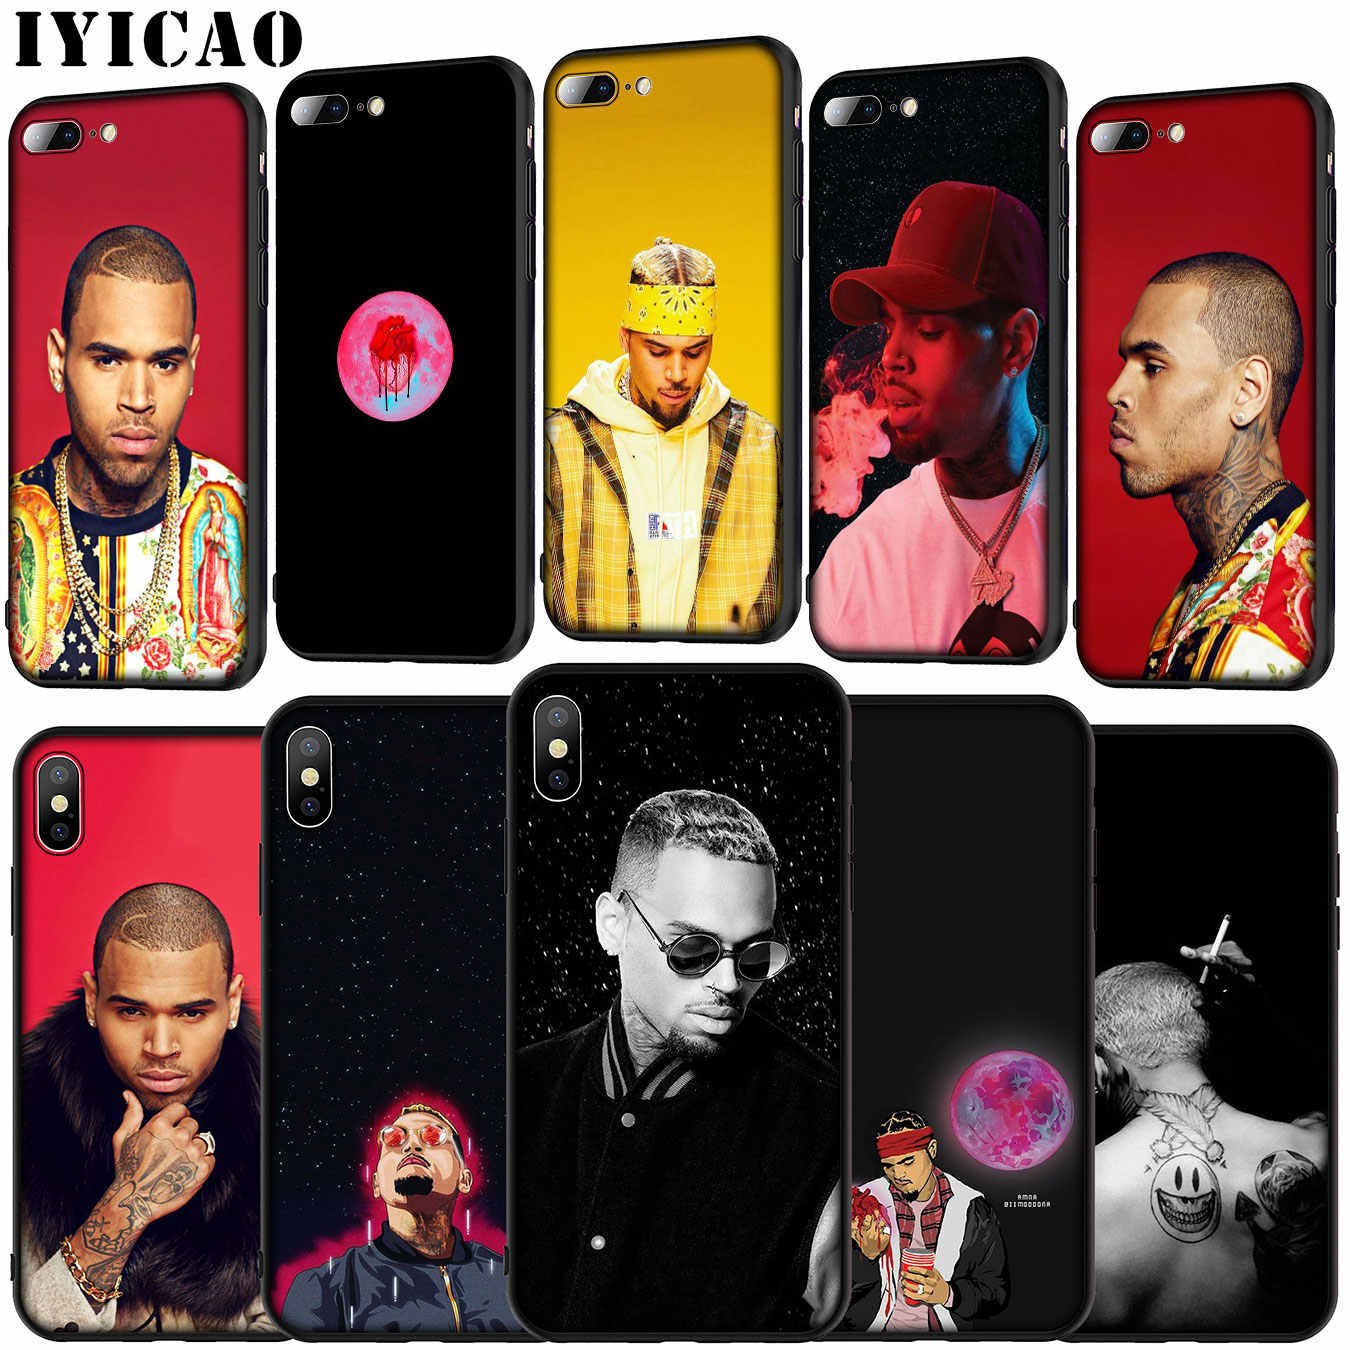 IYICAO Chris Brown Rap Hot singer Soft Silicone Cover Case for iPhone 11 Pro XR X XS Max 6 6S 7 8 Plus 5 5S SE Black Phone Case